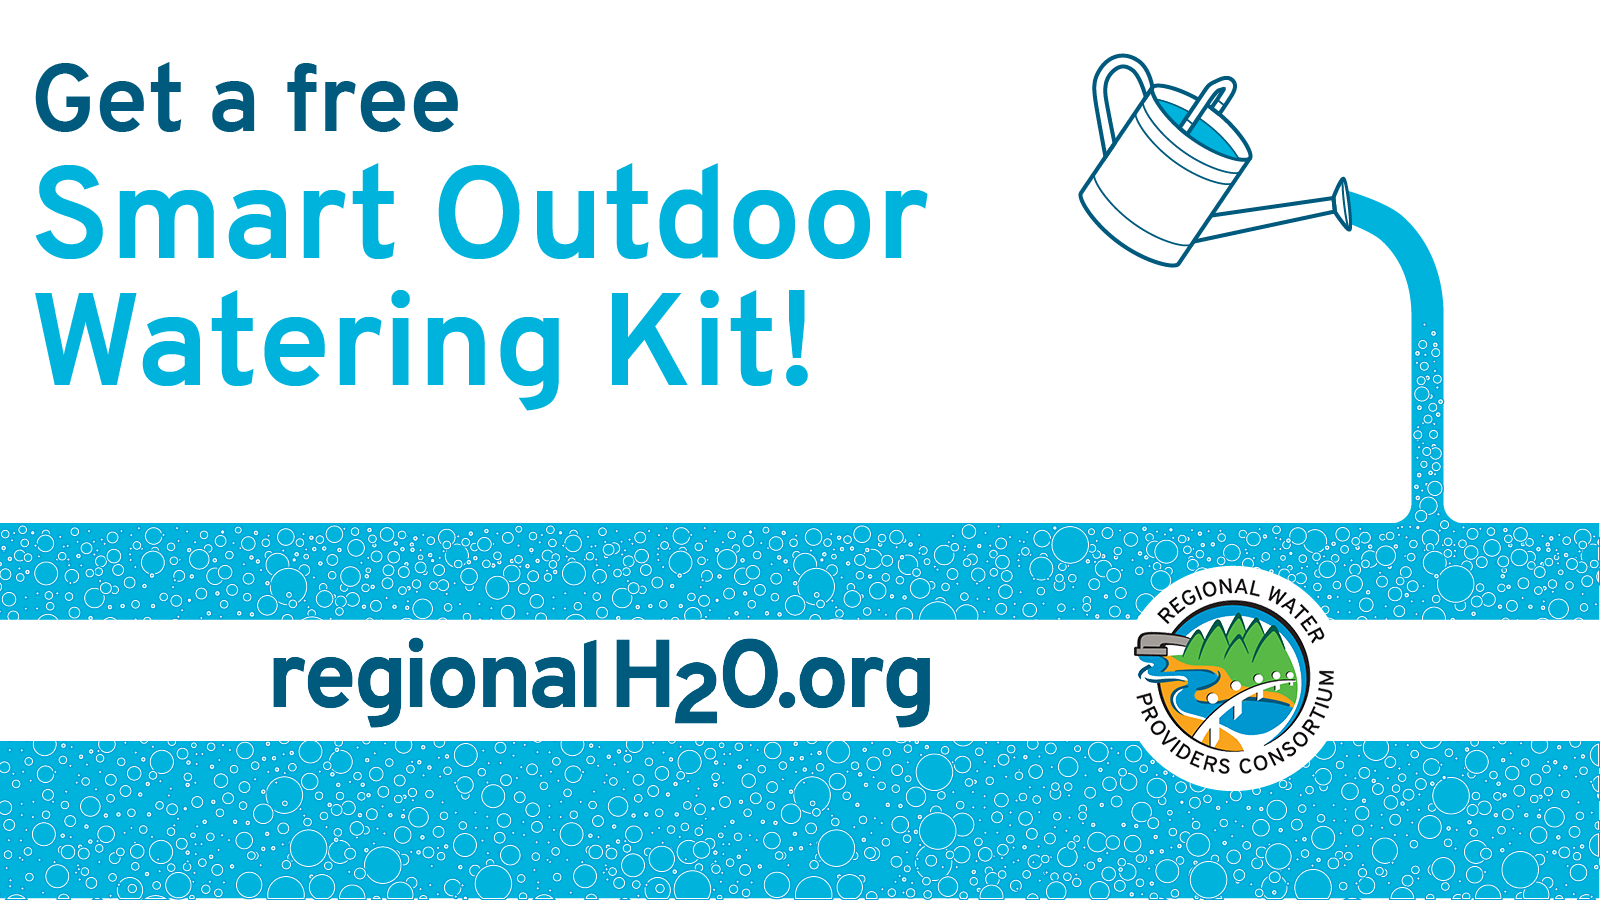 Get a free Smart Outdoor Watering Kit! From the Re